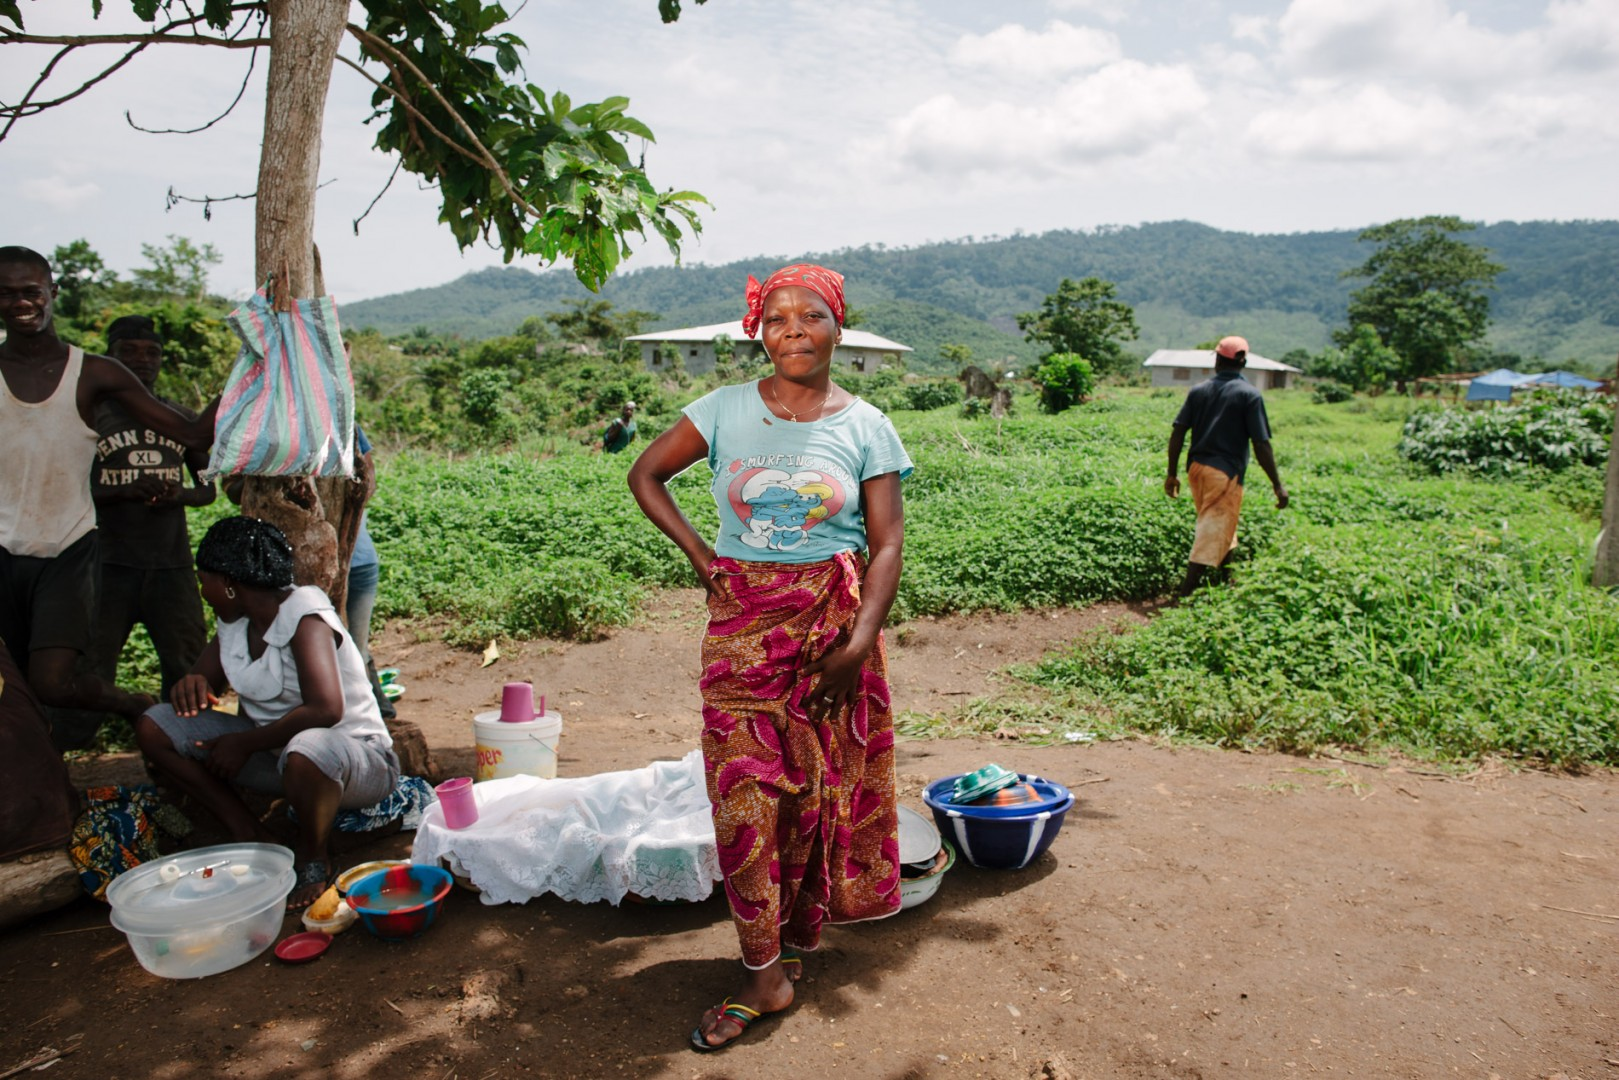 Agnes, cook. Agnes setup a small kitchen under the tree next to the building site selling lunch to all the workers.